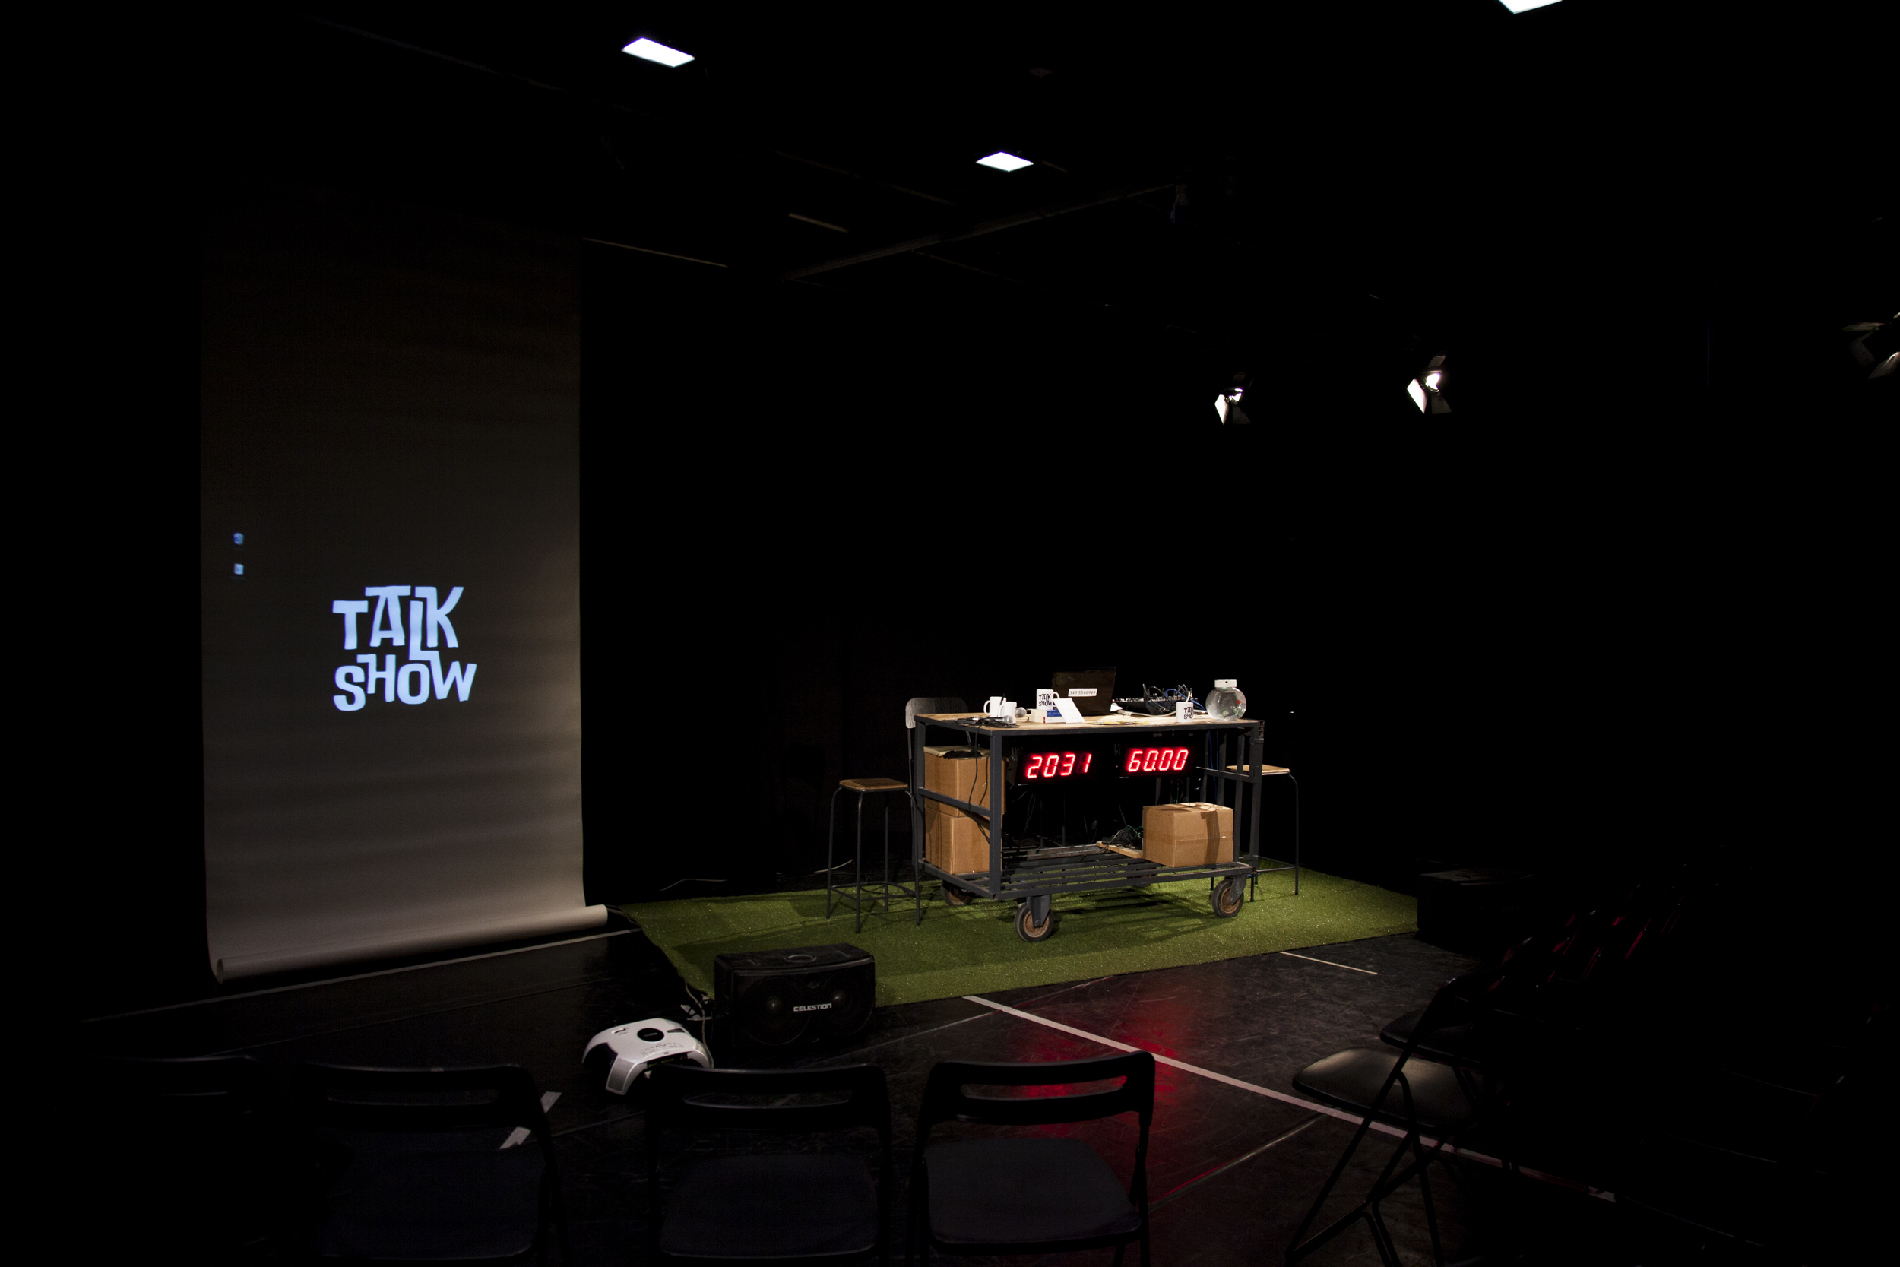 Talk Show_ph. Matteo Tortora 1 copy